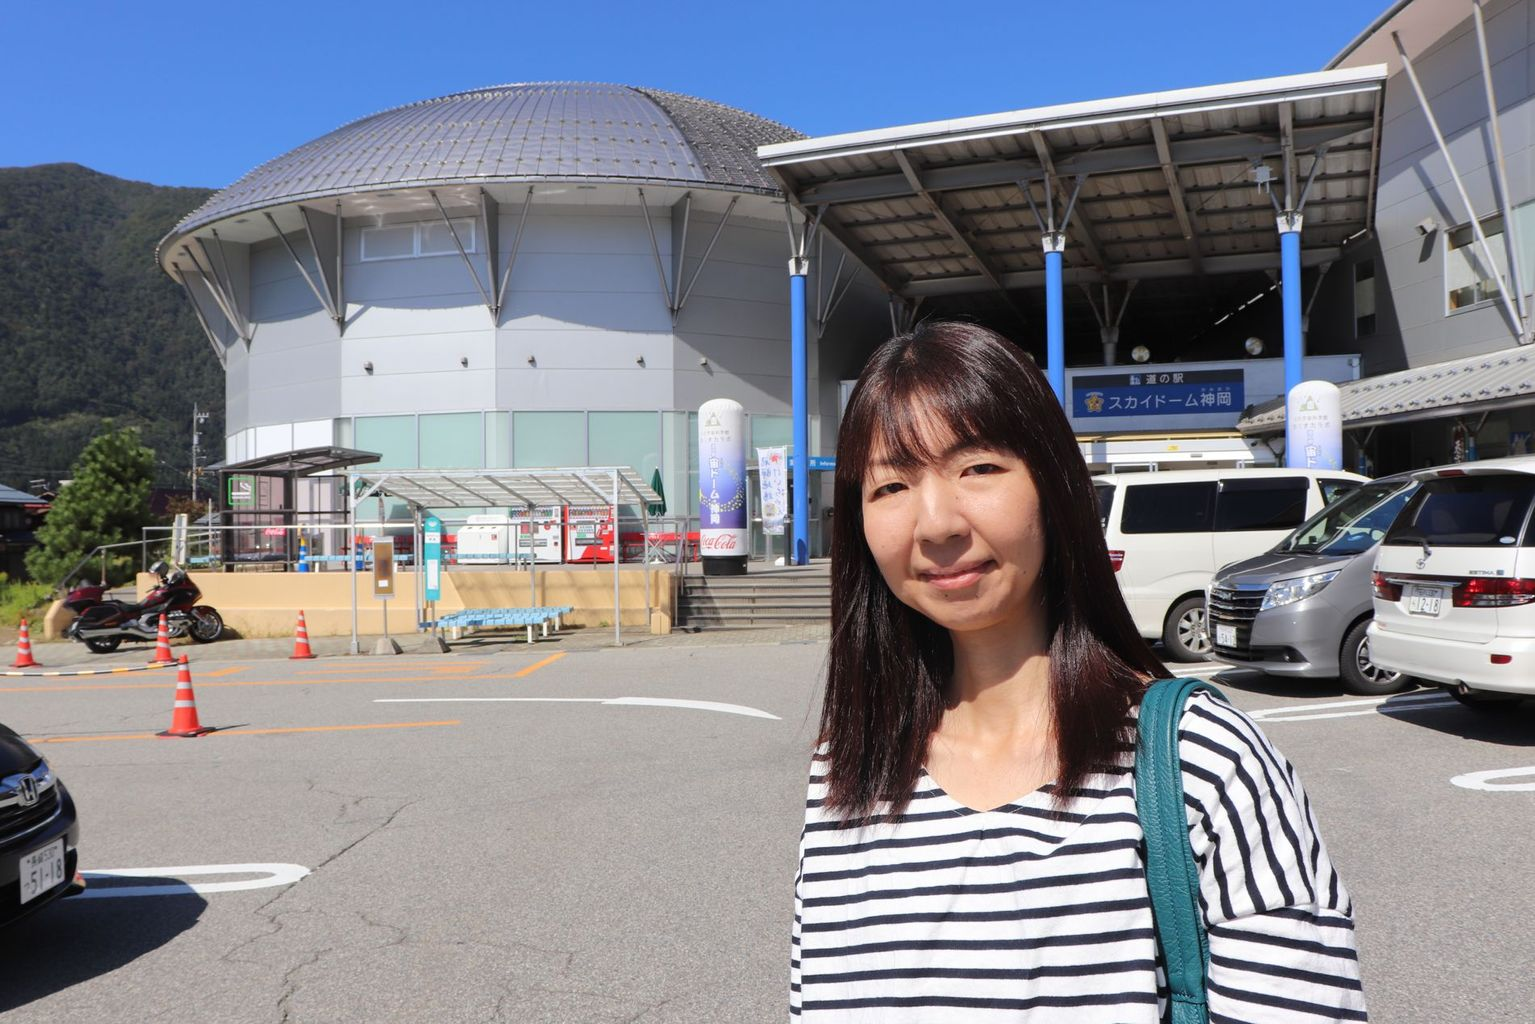 Dr. Yumiko Takenaga, PR officer of the Kamioka Observatory, and researchers around Kamioka collaborating with Hida-city have contributed to establishing the KamiokaLab Science Museum in Kamioka, which informs the general public about neutrino research. Photo: B. Vogel